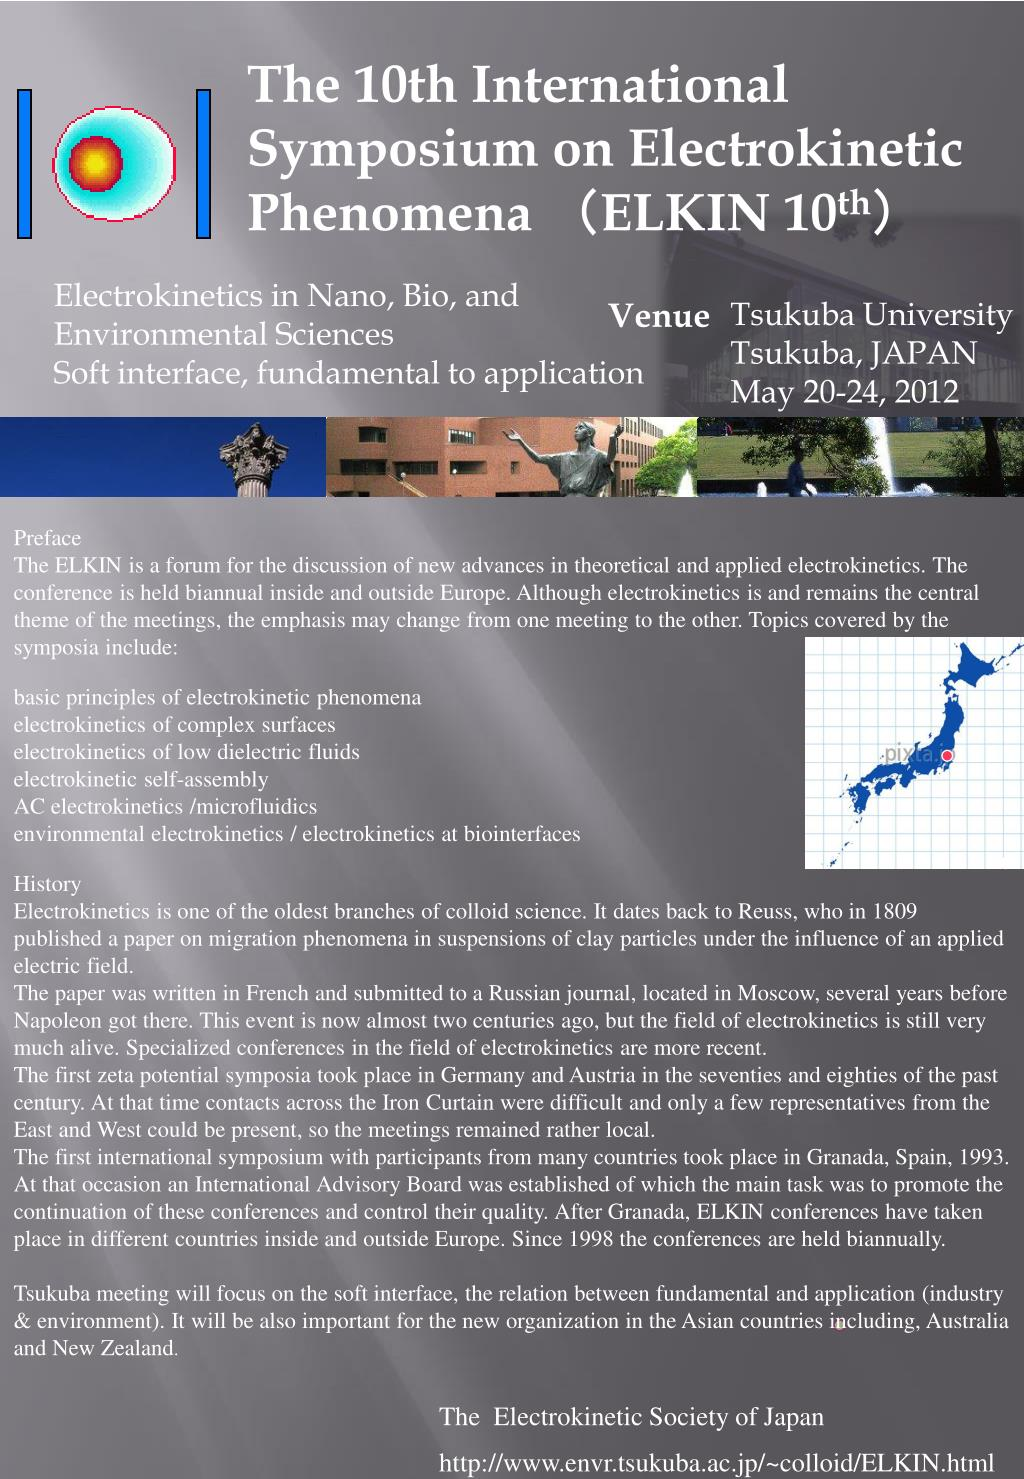 The 10th International Symposium on Electrokinetic Phenomena